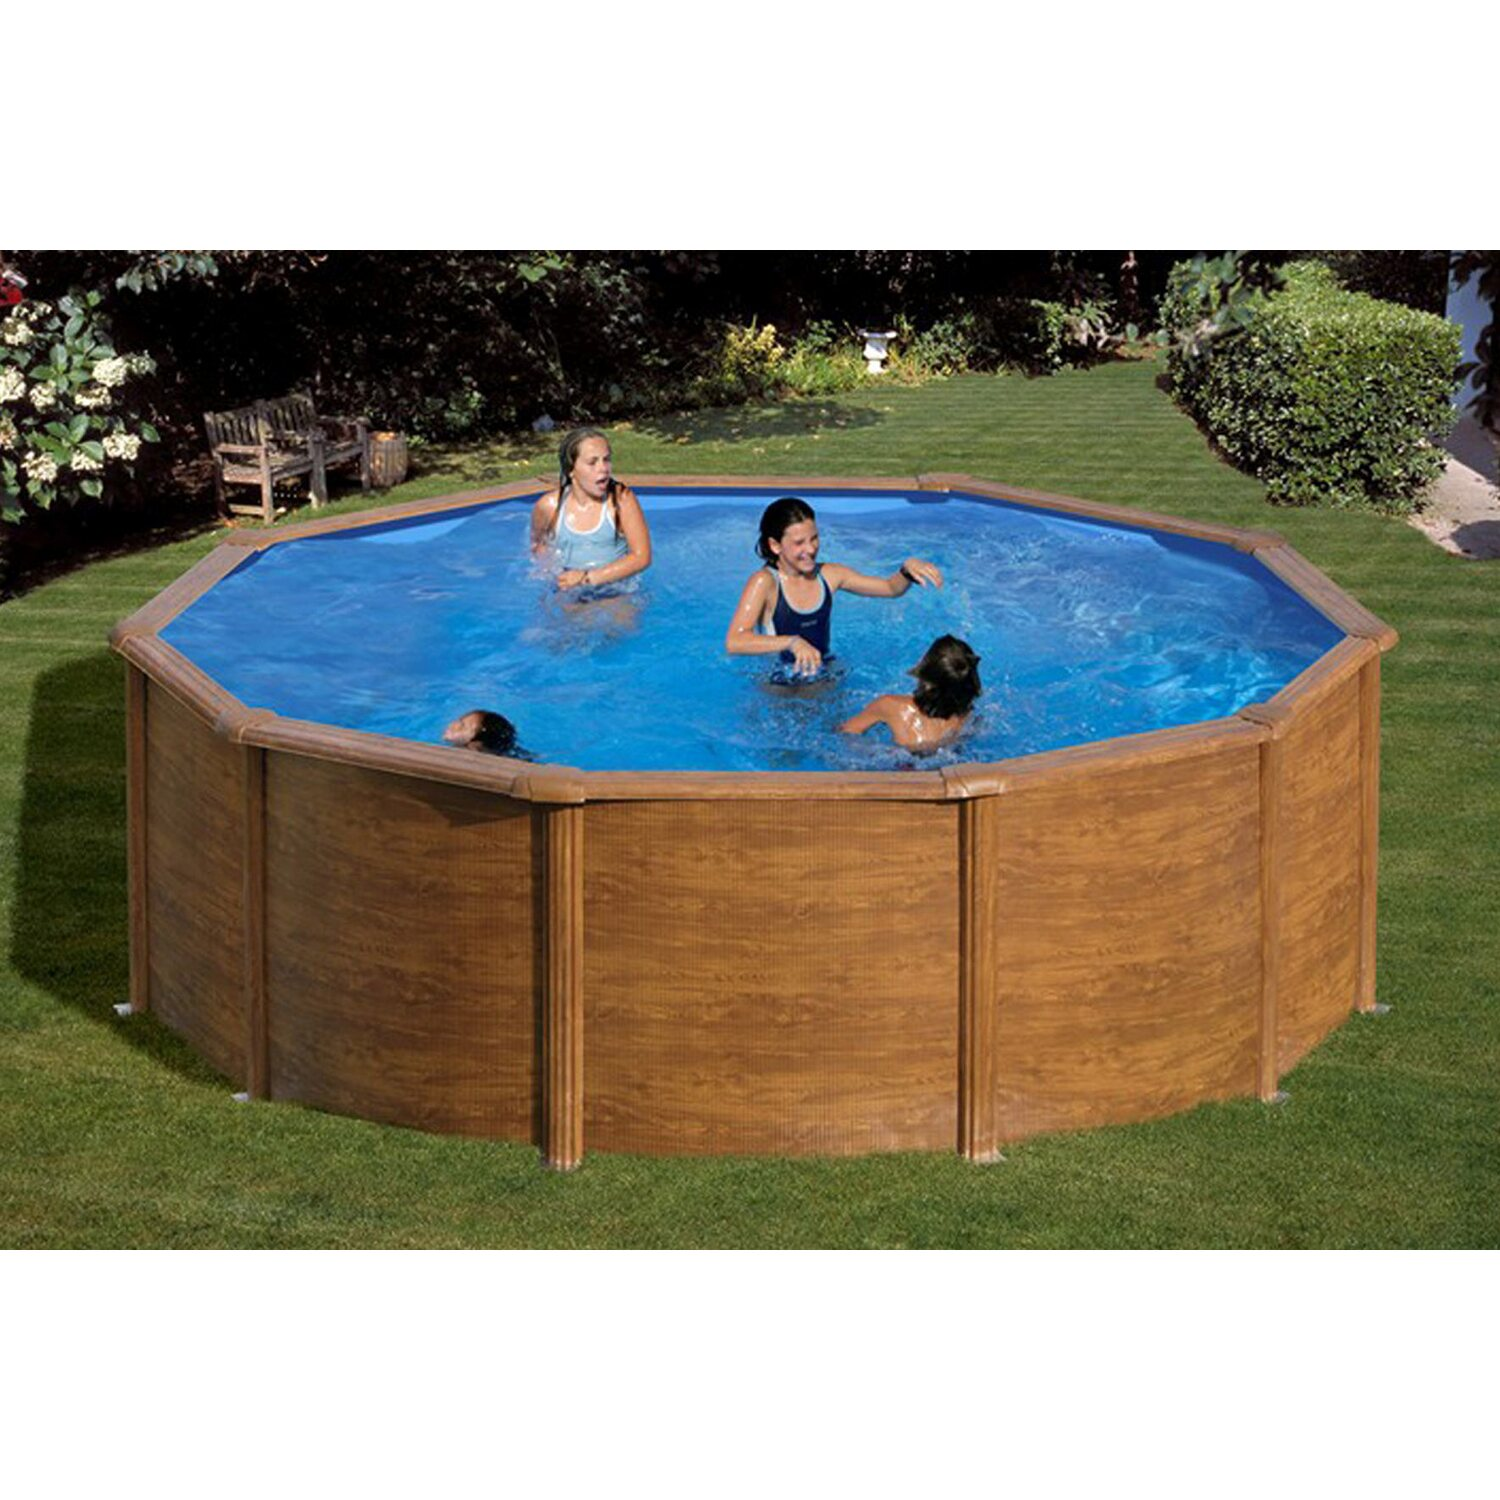 Summer Fun Stahlwand Pool Set Holz Dekor Rhodos